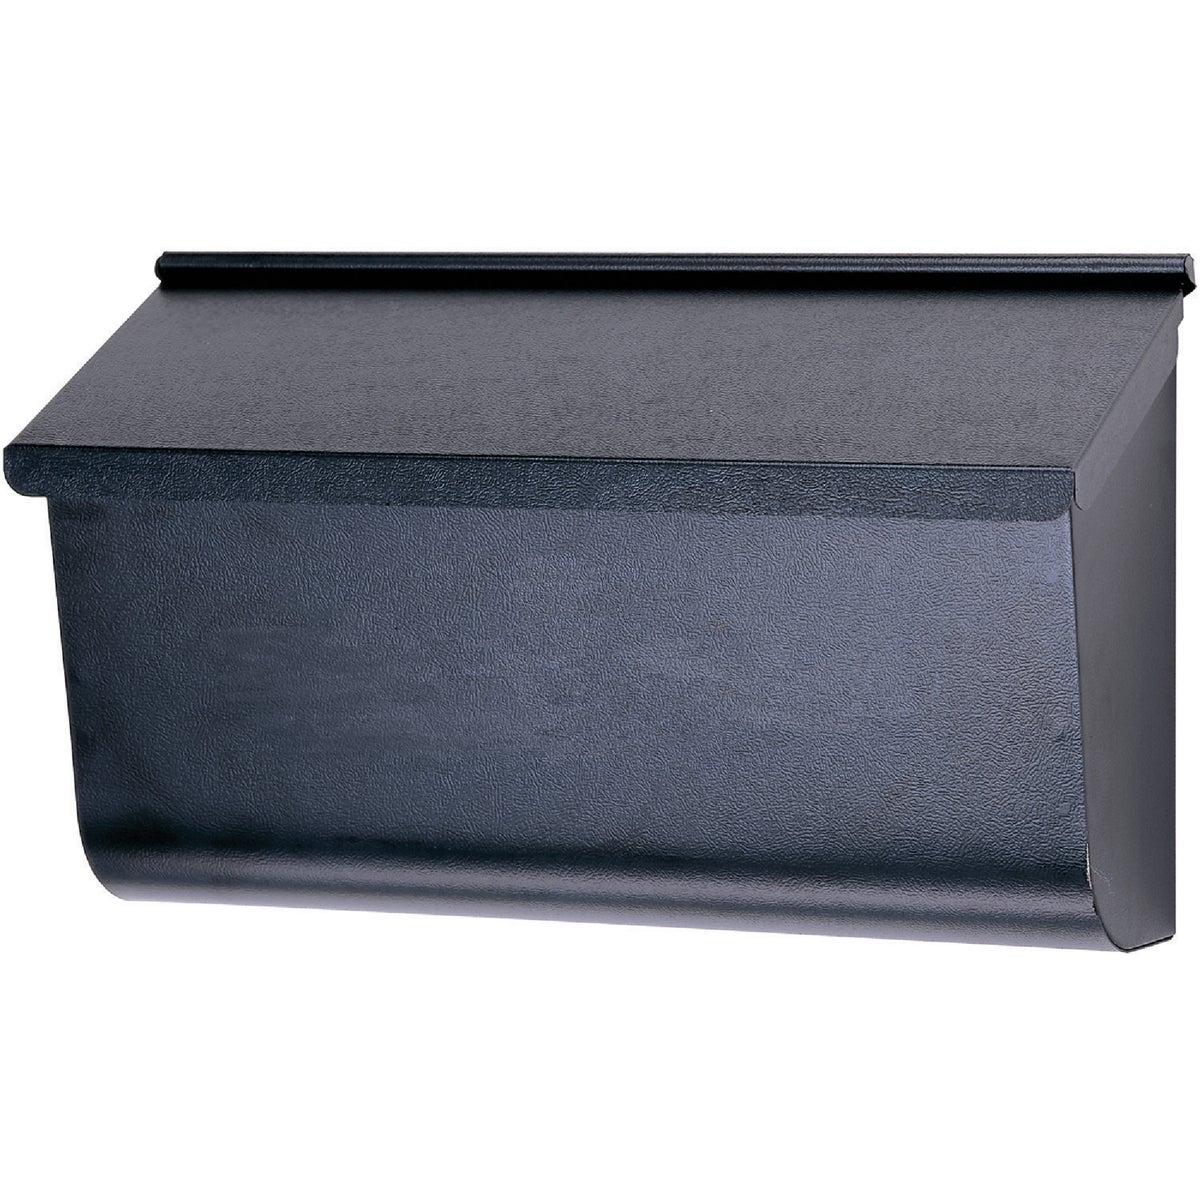 BLK HORZNTL WALL MAILBOX - L4010WB0 by Solar Group